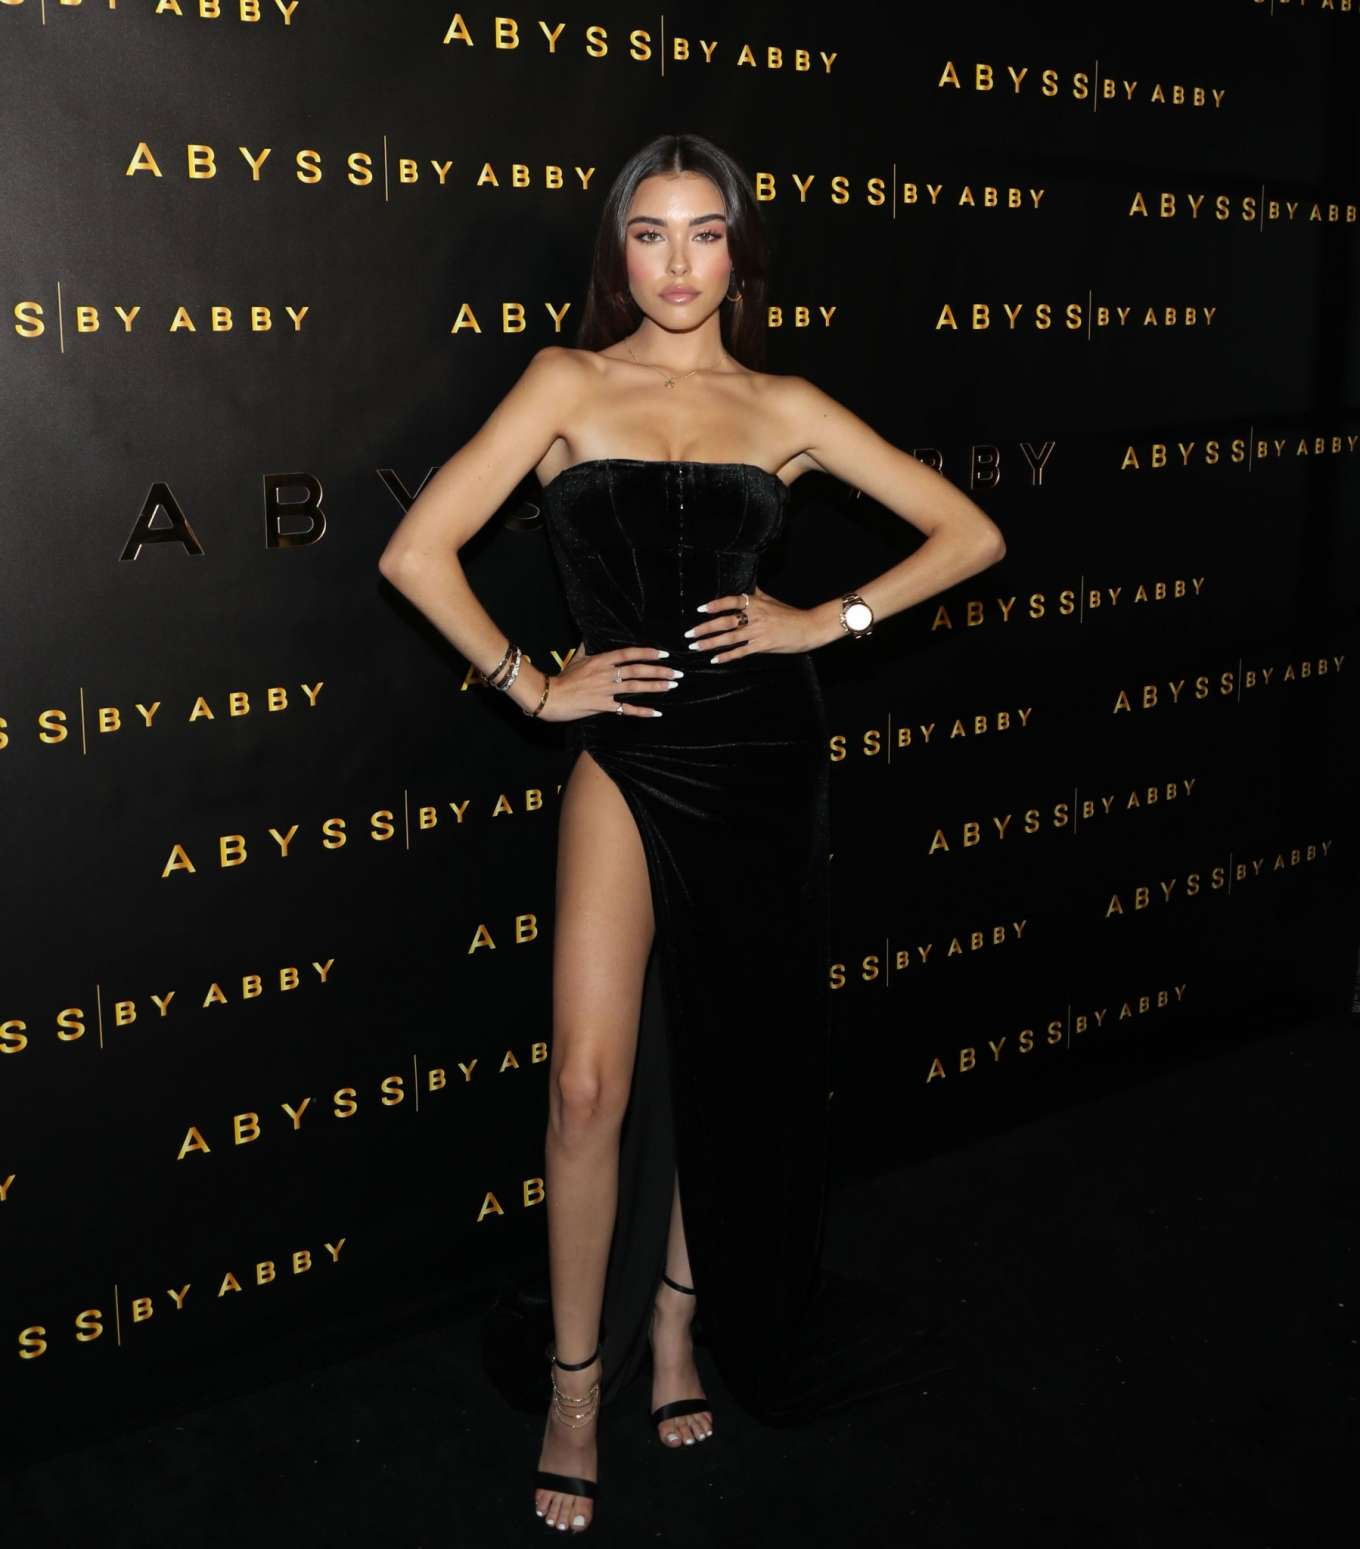 Madison Beer smoulders strapless at the Abyss by Abby launch in LA